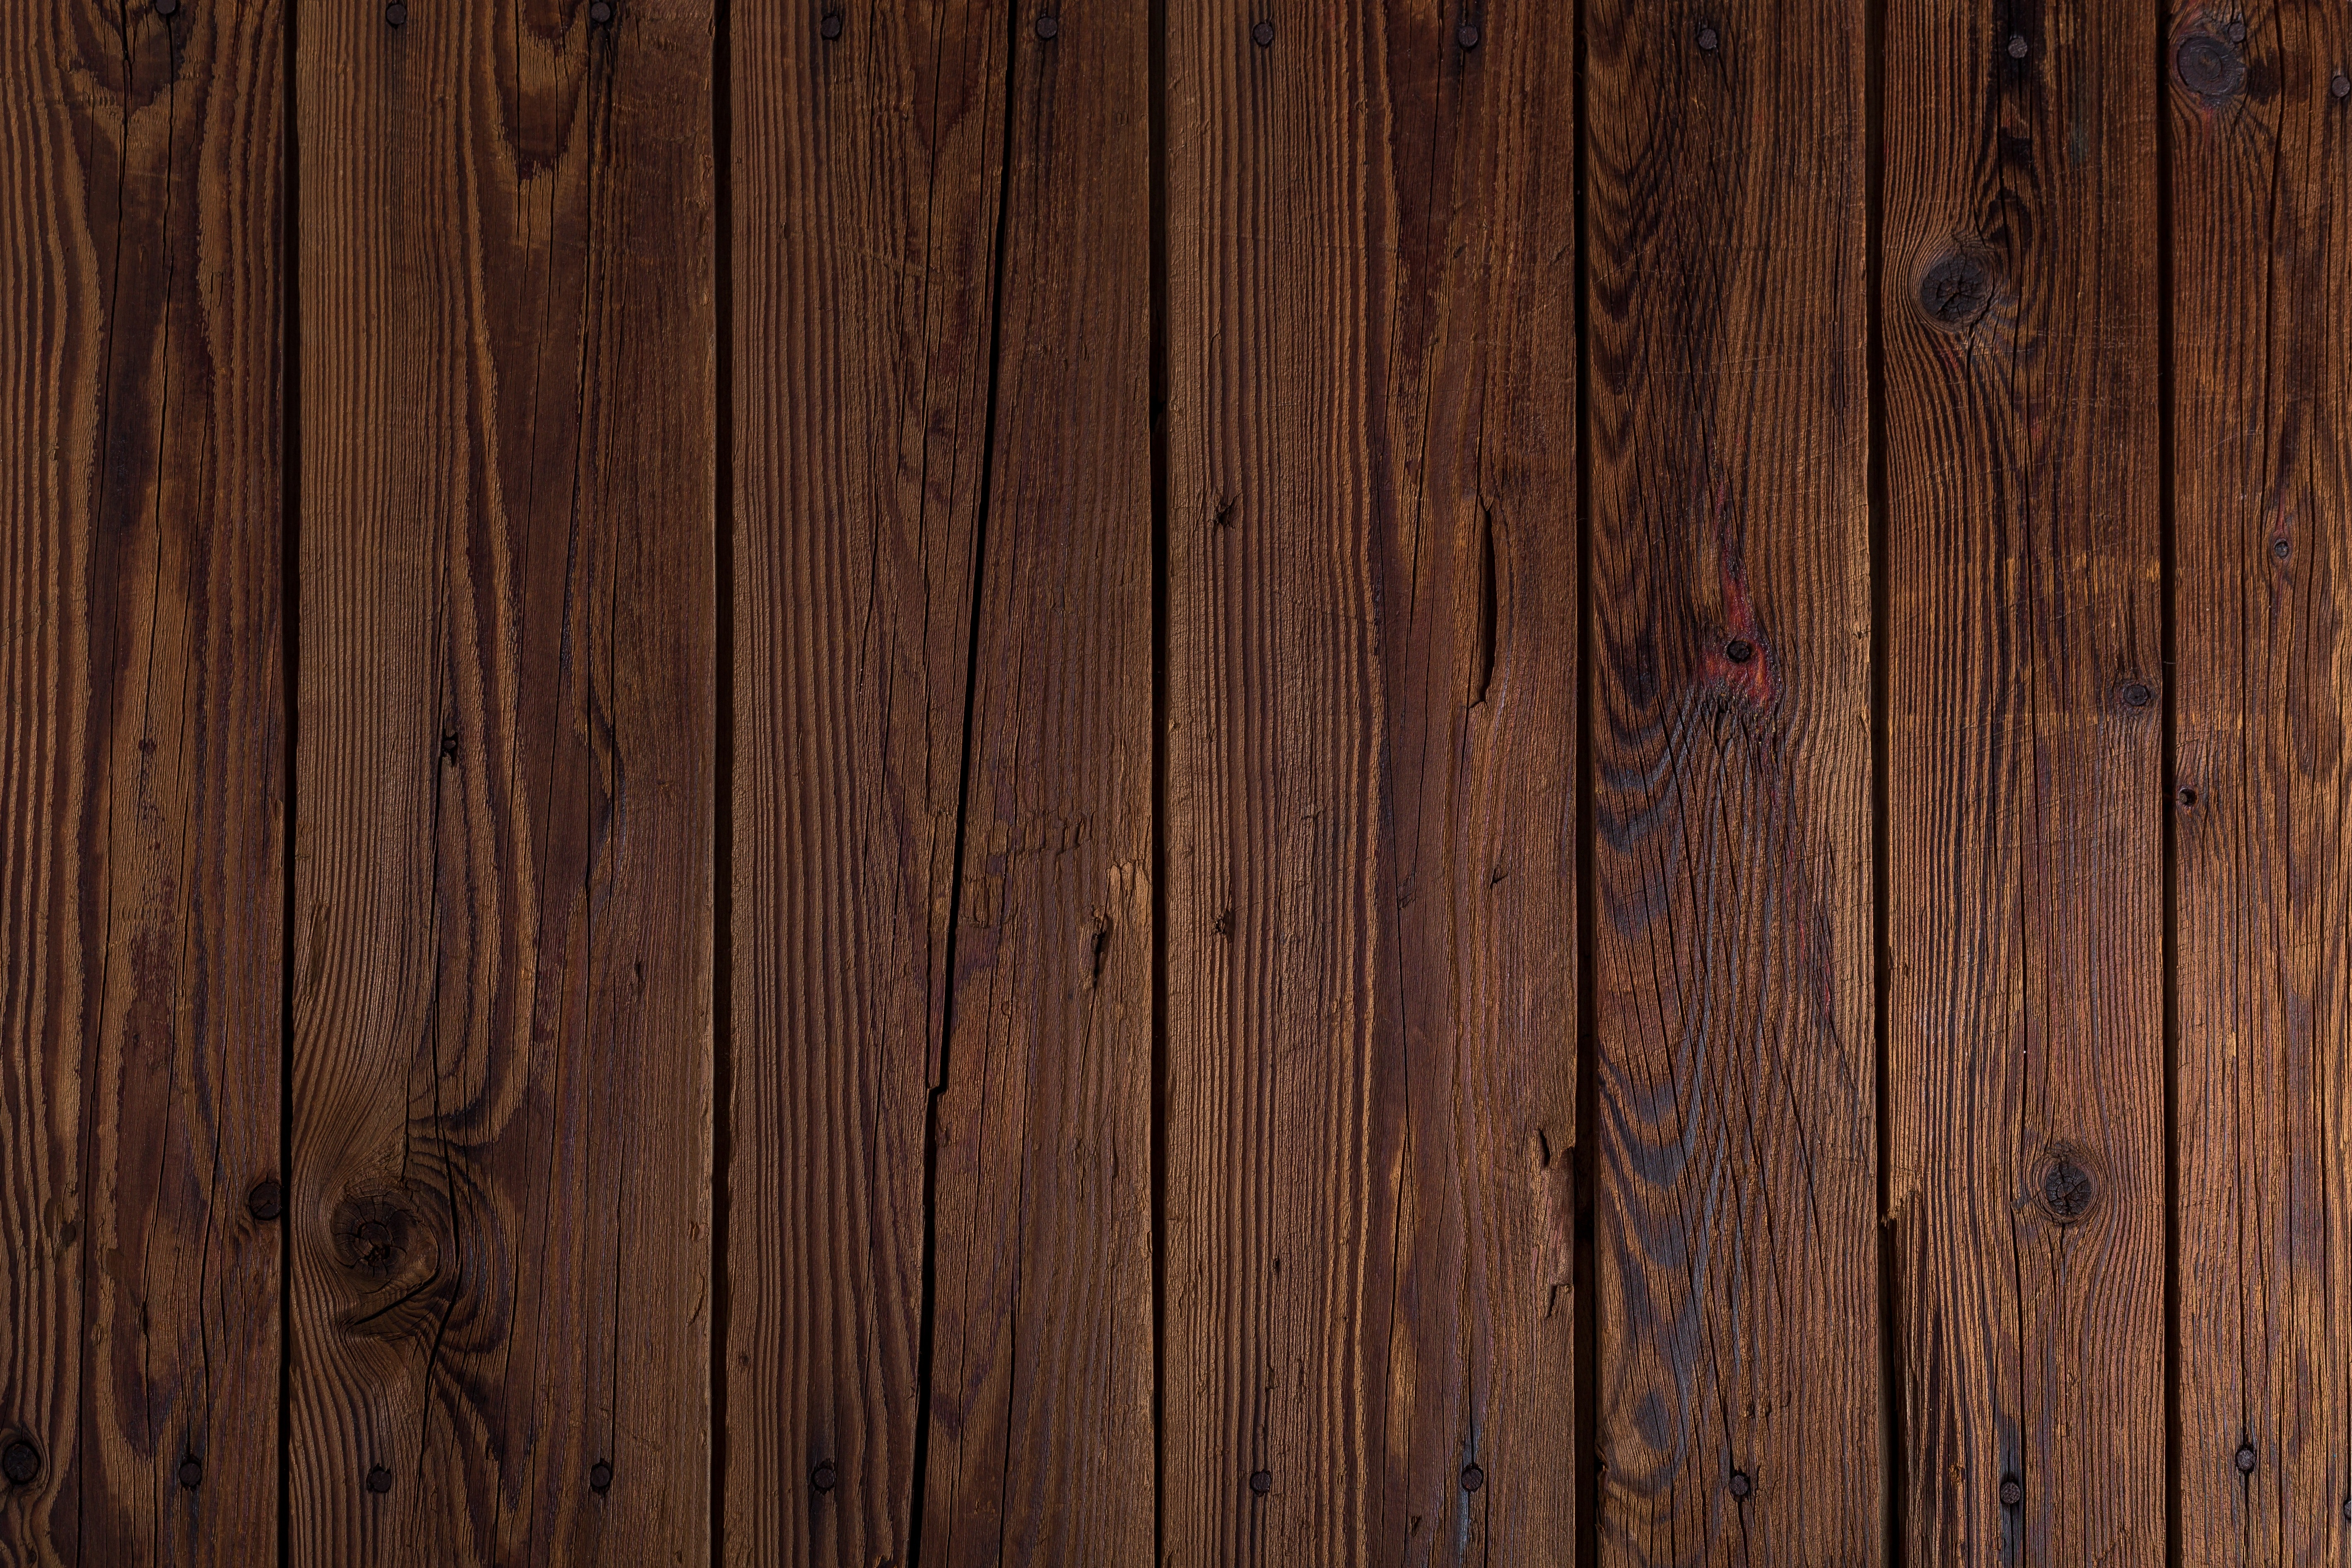 Close-up of wooden plank photo